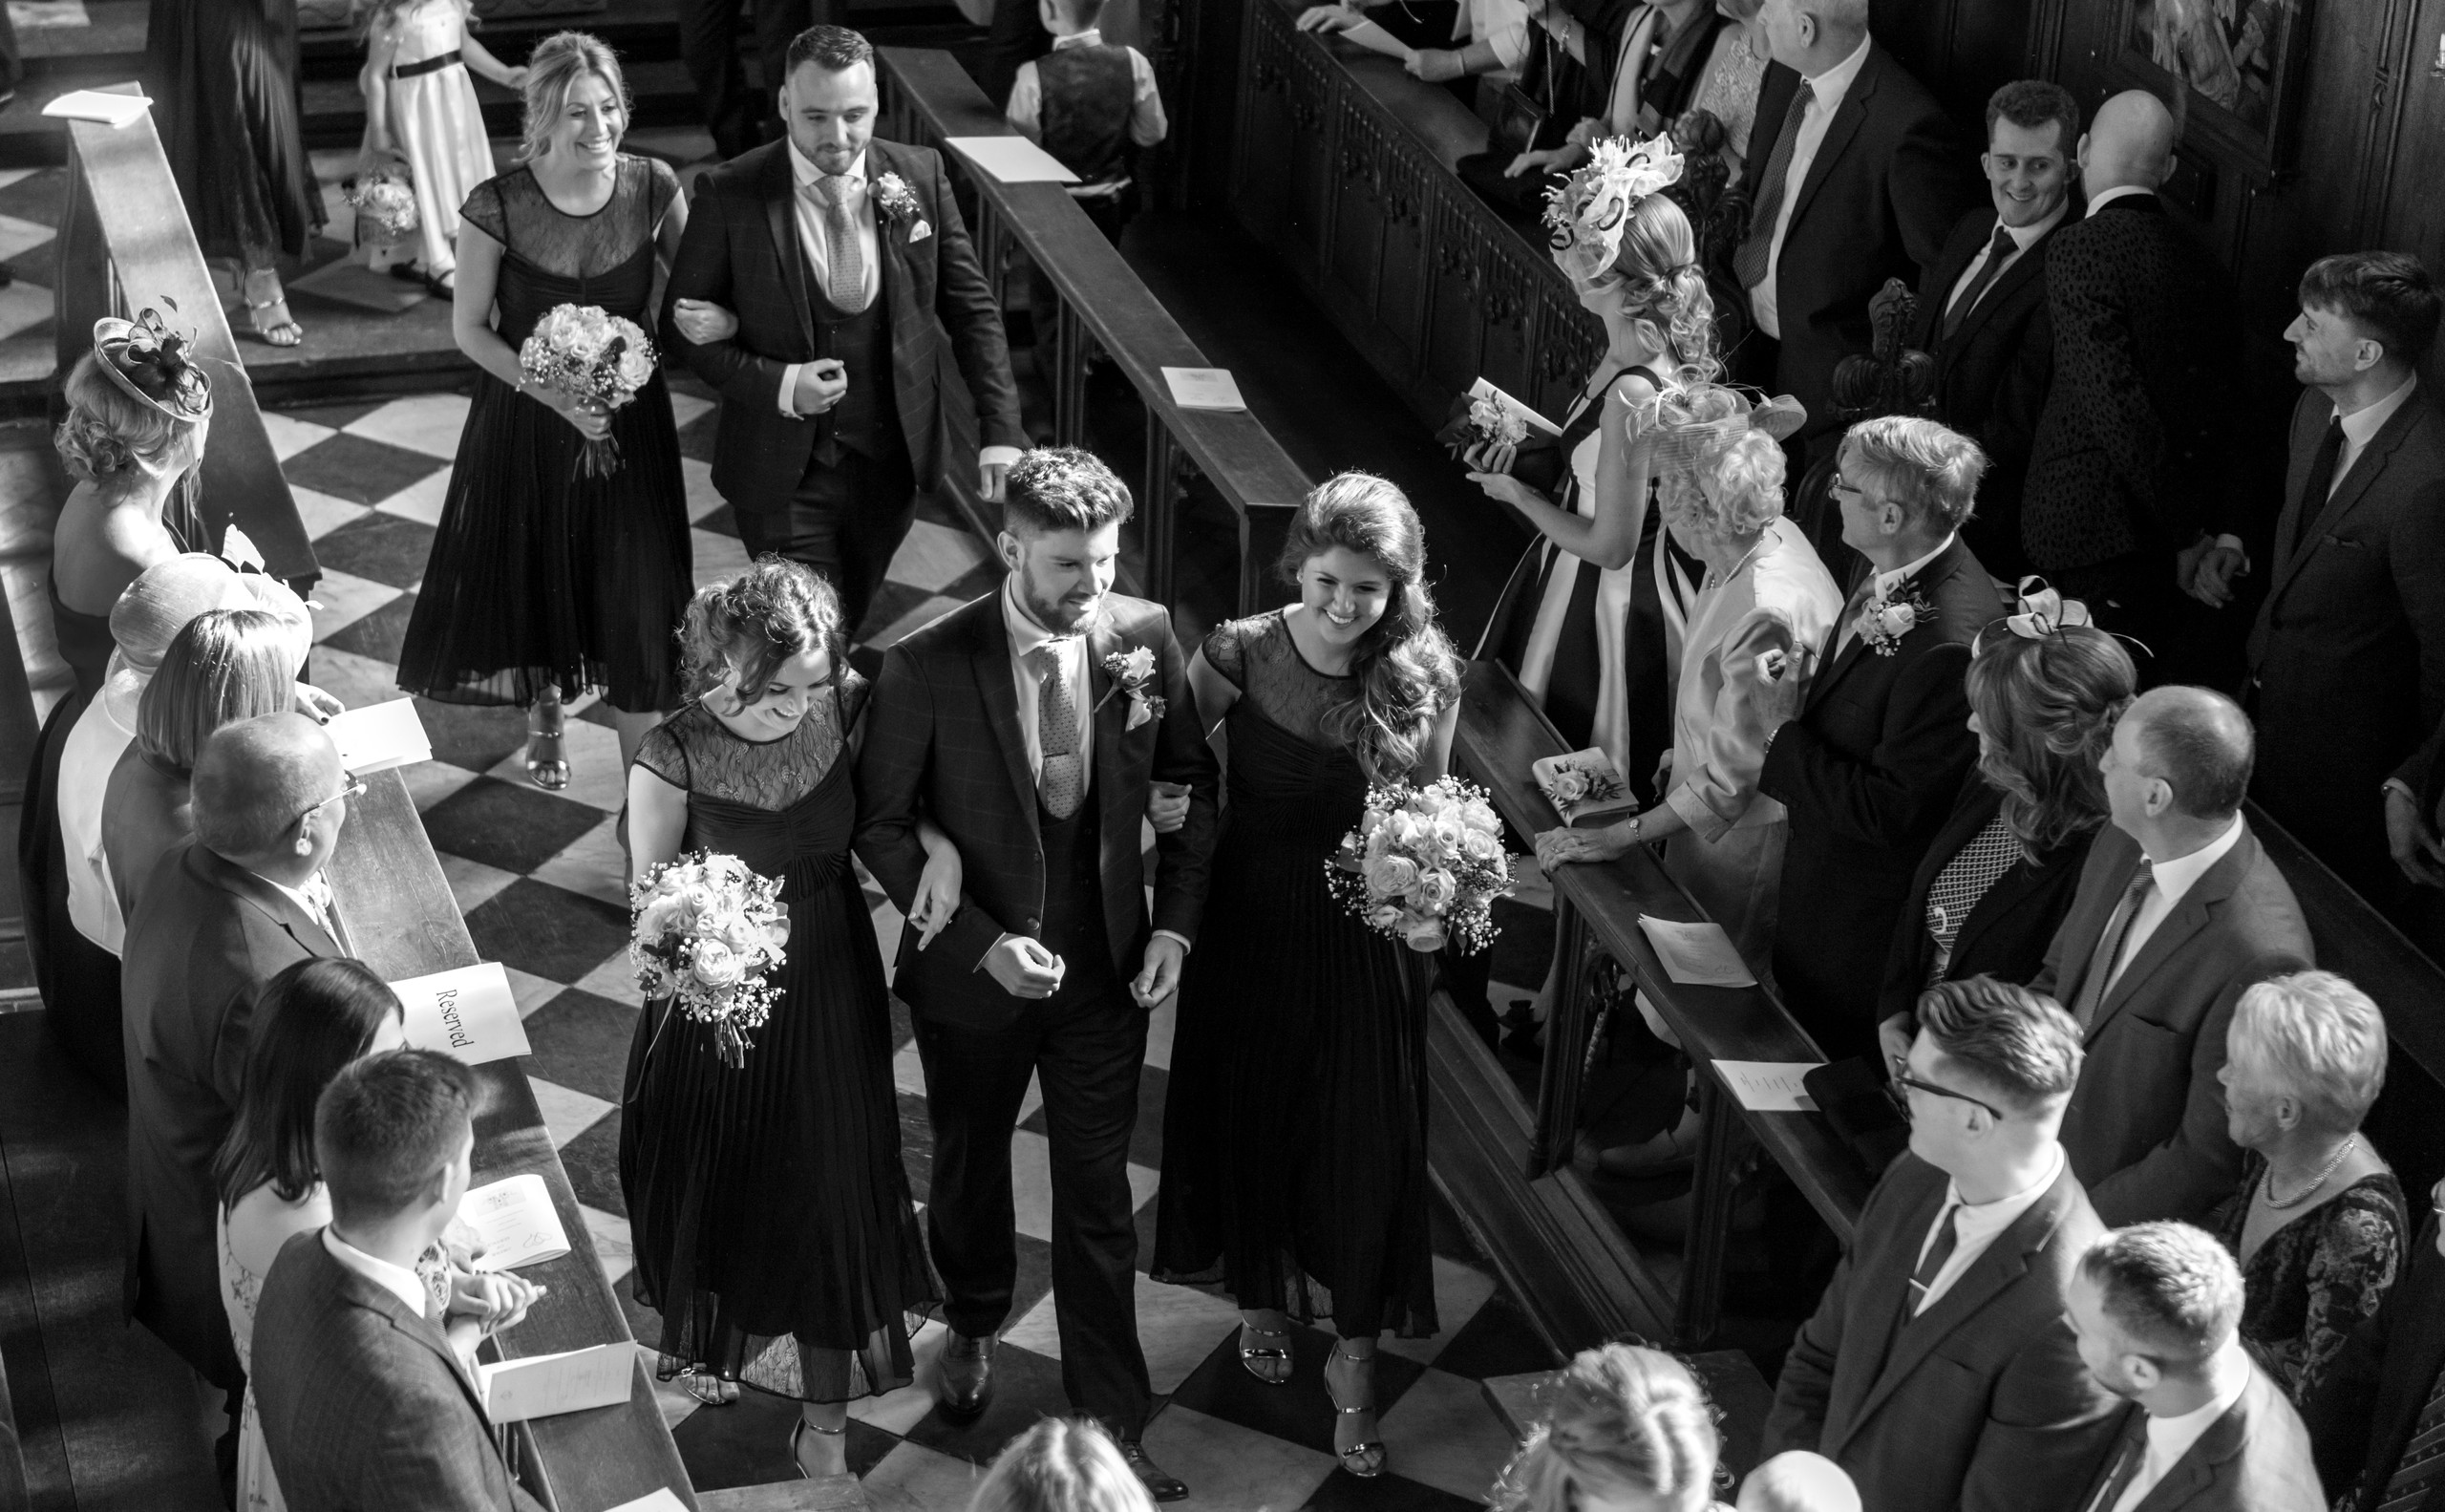 Relaxed black and white monochrome photograph of bridesmaids and groomsman walking down the aisle of Tunstall Chapel of Durham Castle on day of wedding ceremony